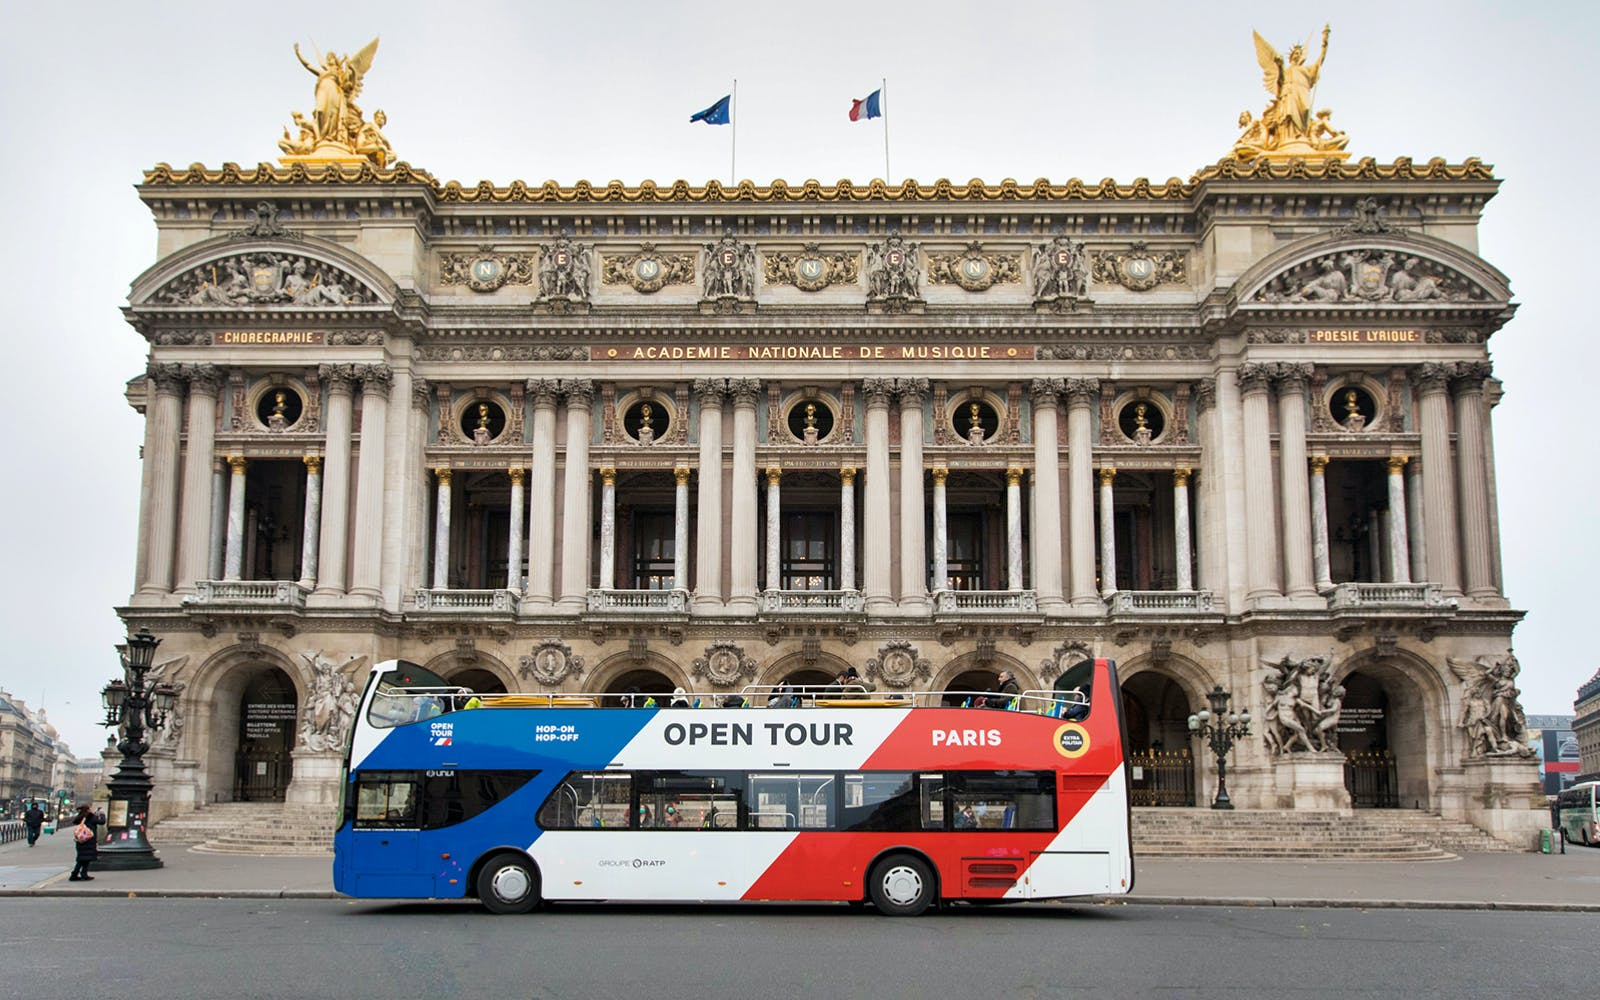 Hop-On Hop-Off - 1 Day, 2 Day, 3 Day Paris Sightseeing Tour